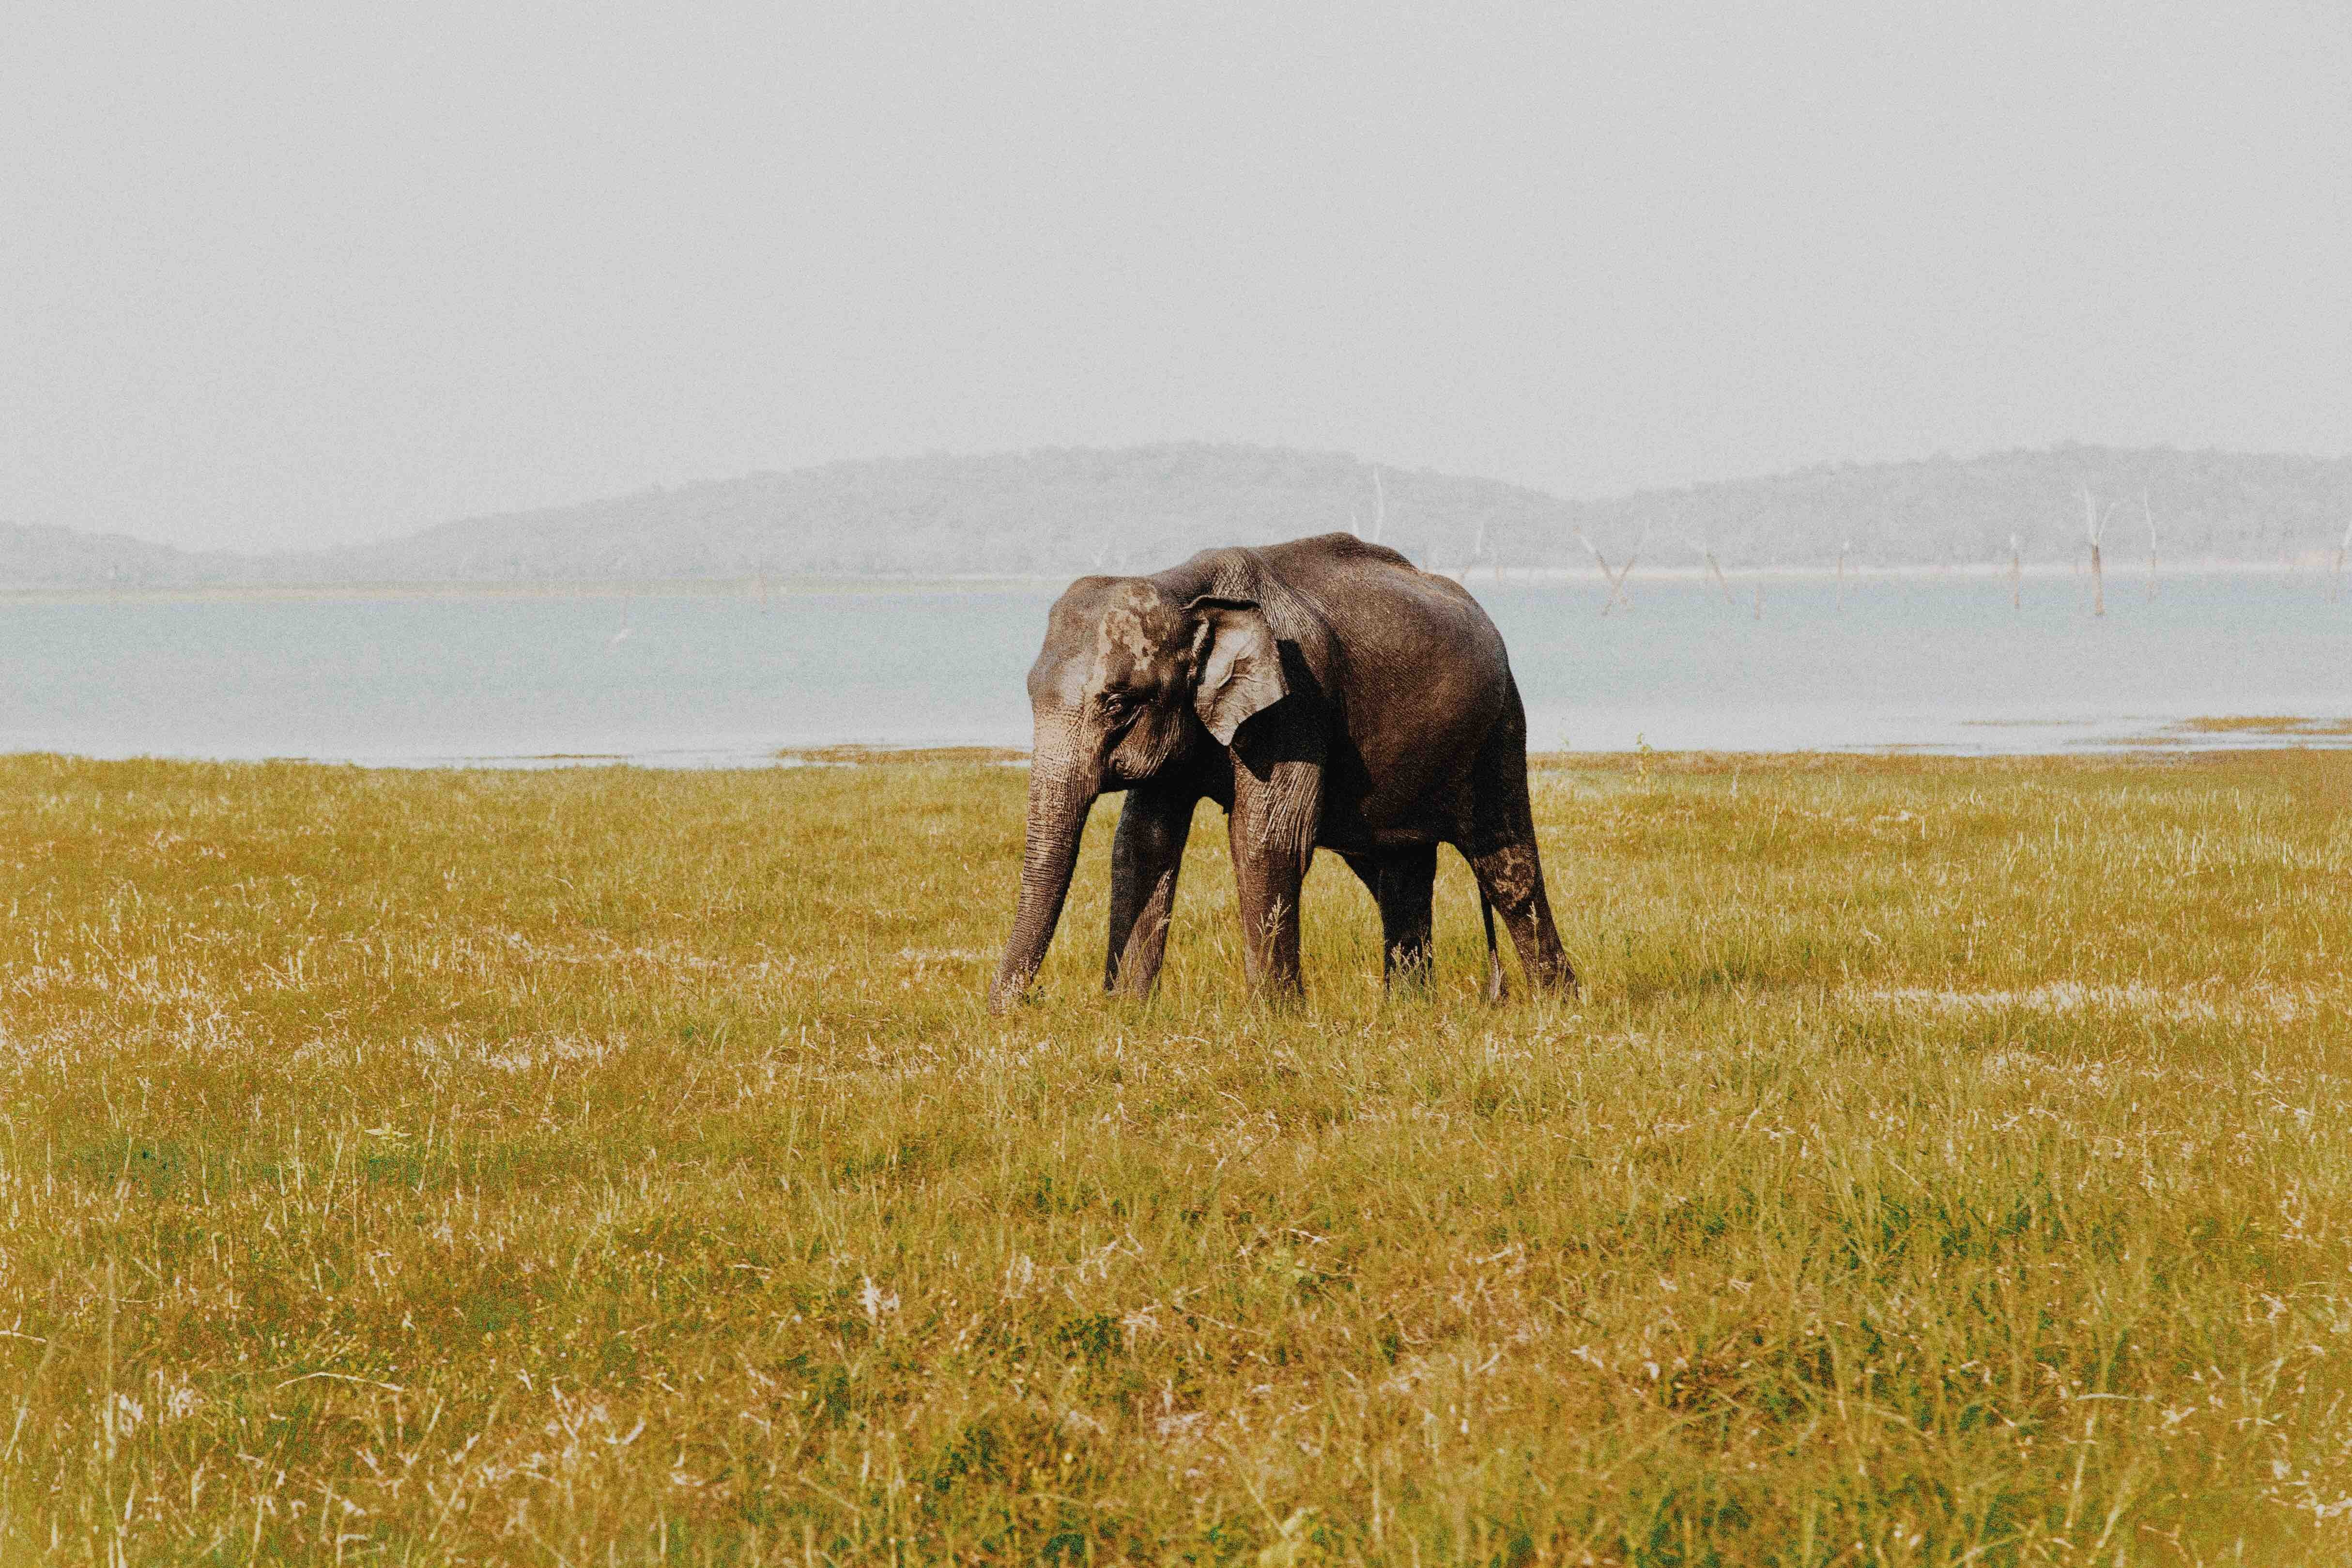 grey elephant in middle of field during daytime